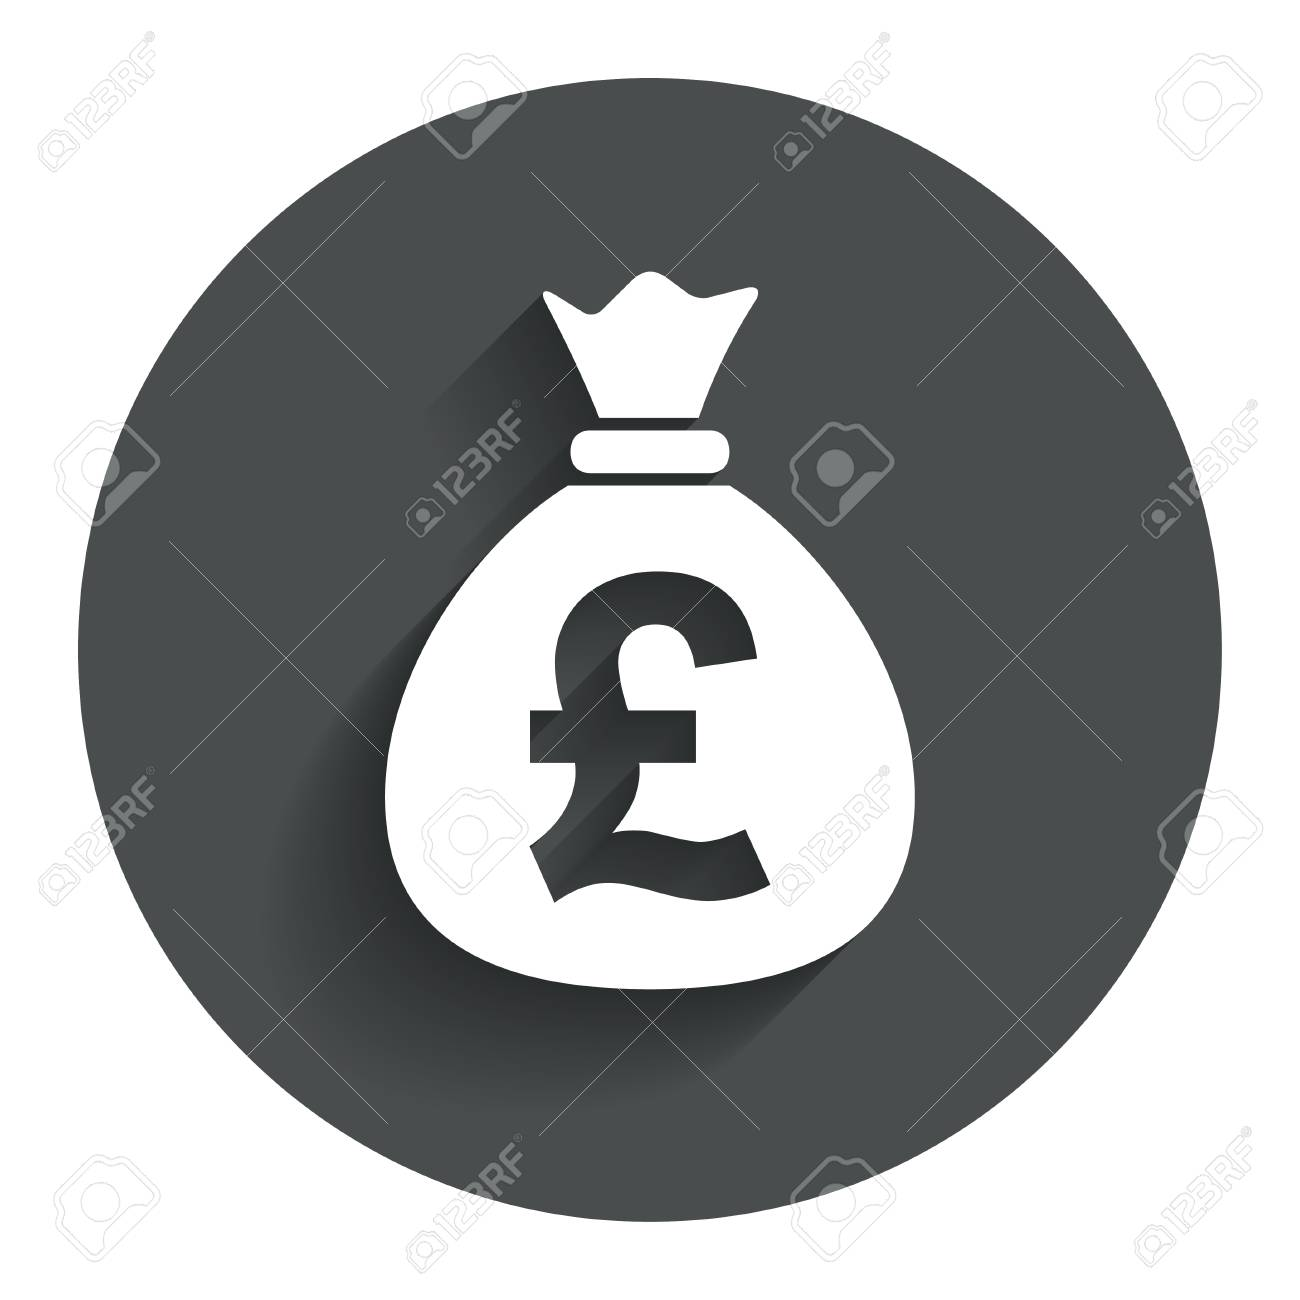 Currency Symbol Gbp Gallery Symbol Logo Design